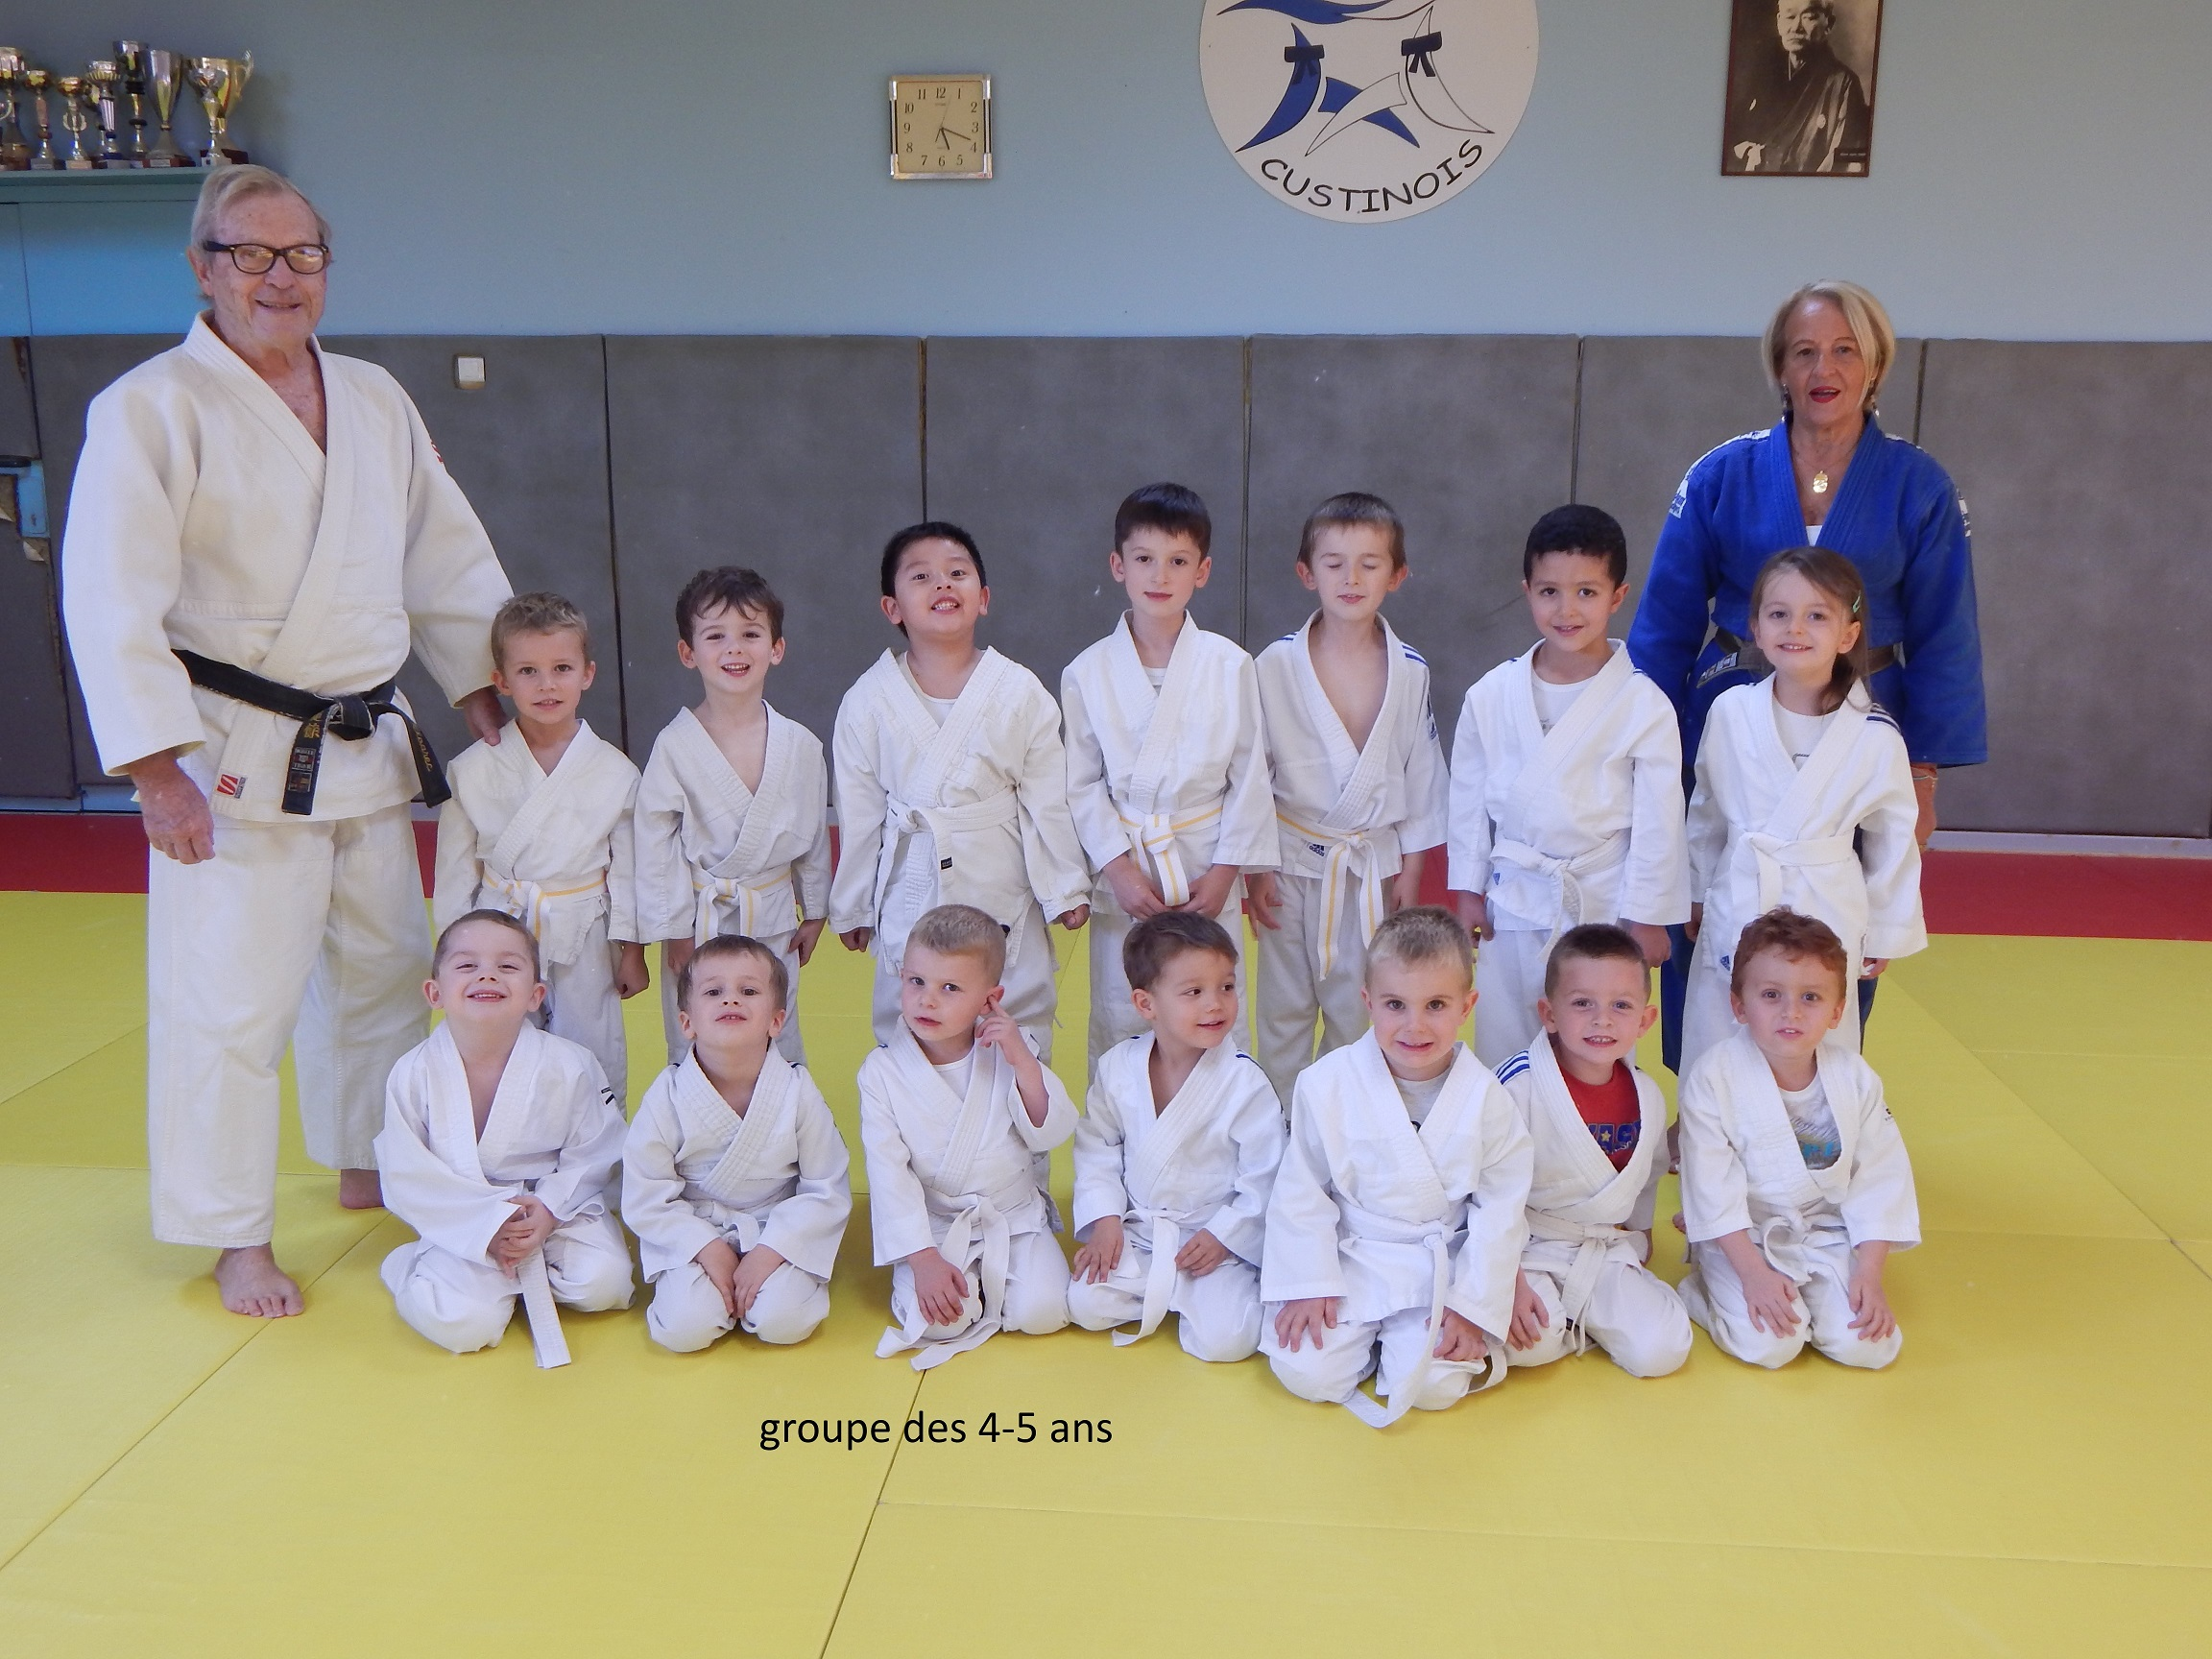 JUDO_Phot-N-1-Groupe-des-4-5-ans-red